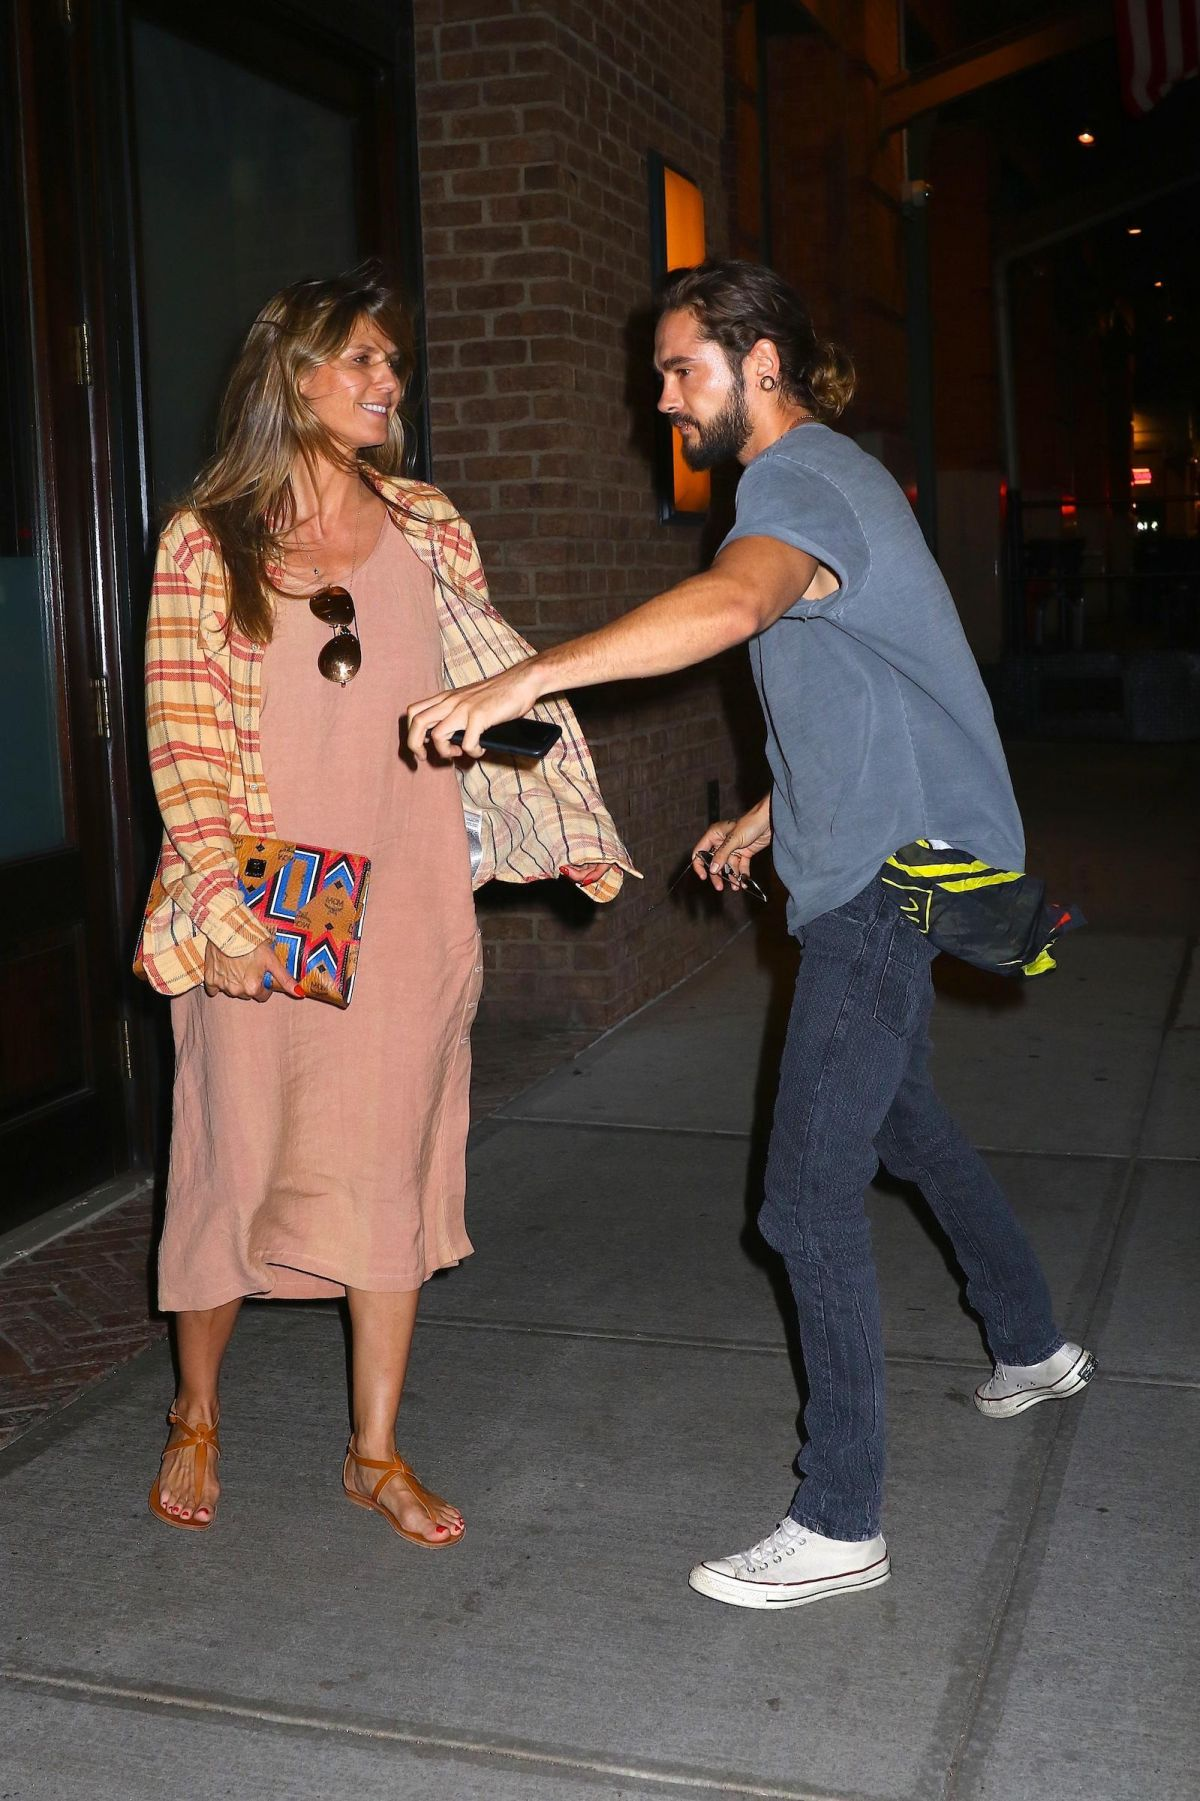 Heidi Klum And Tom Kaulitz Arrives At Their Hotel In New York 07 06